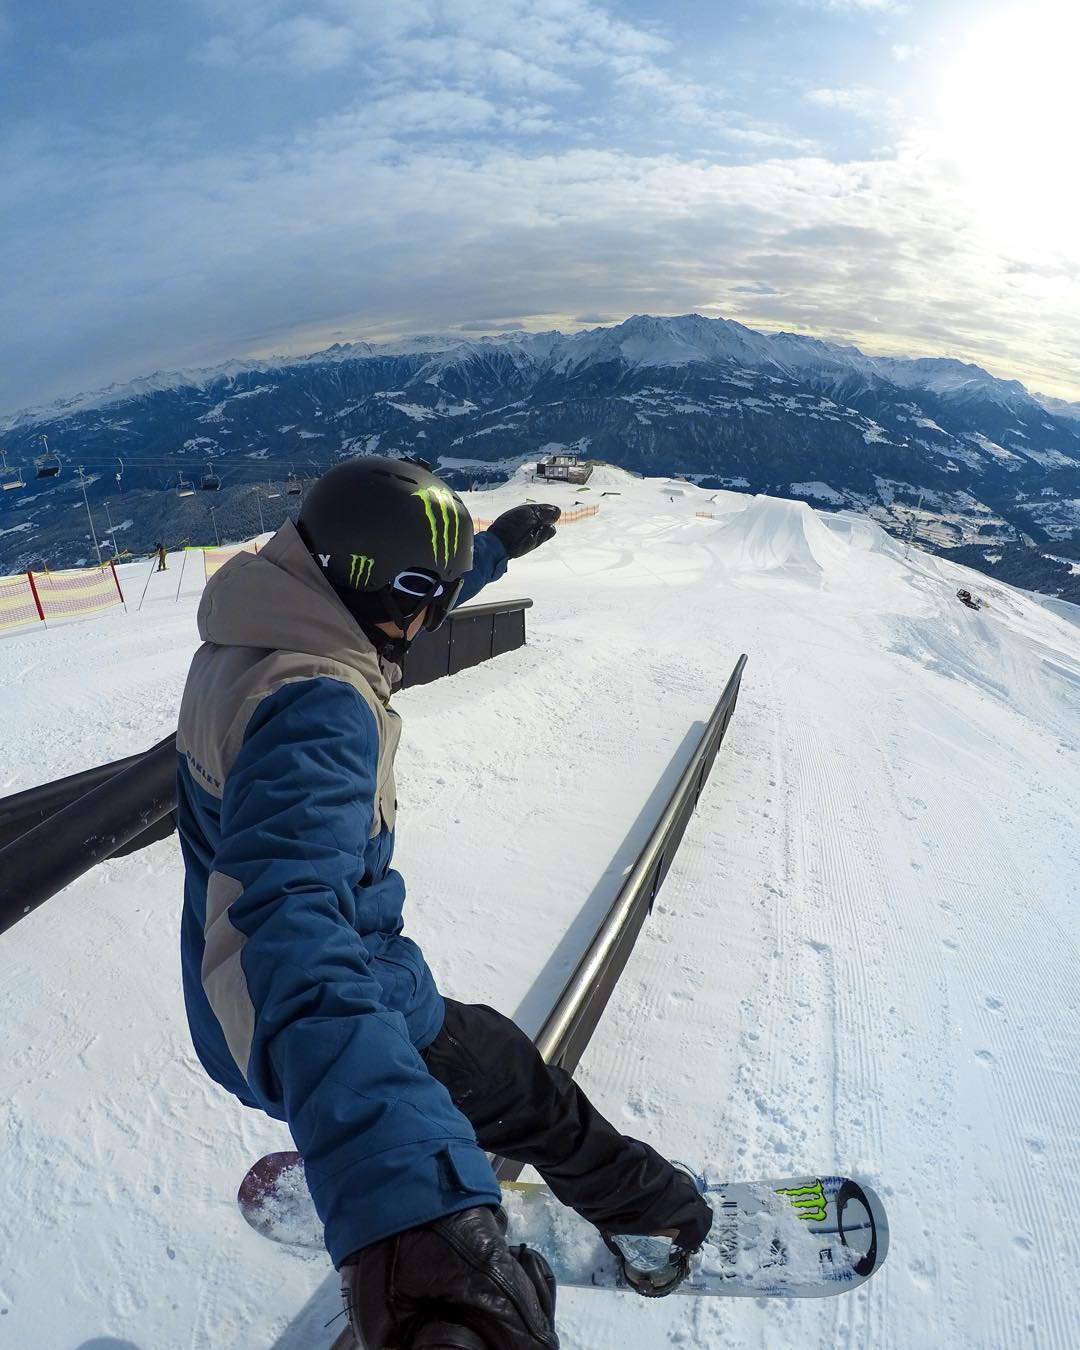 The #GoProSnow family is growing! Welcome to the team, @SvenThorgren, we're stoked to have you on board + watch you compete at #LAAXOpen this week! #GoPro